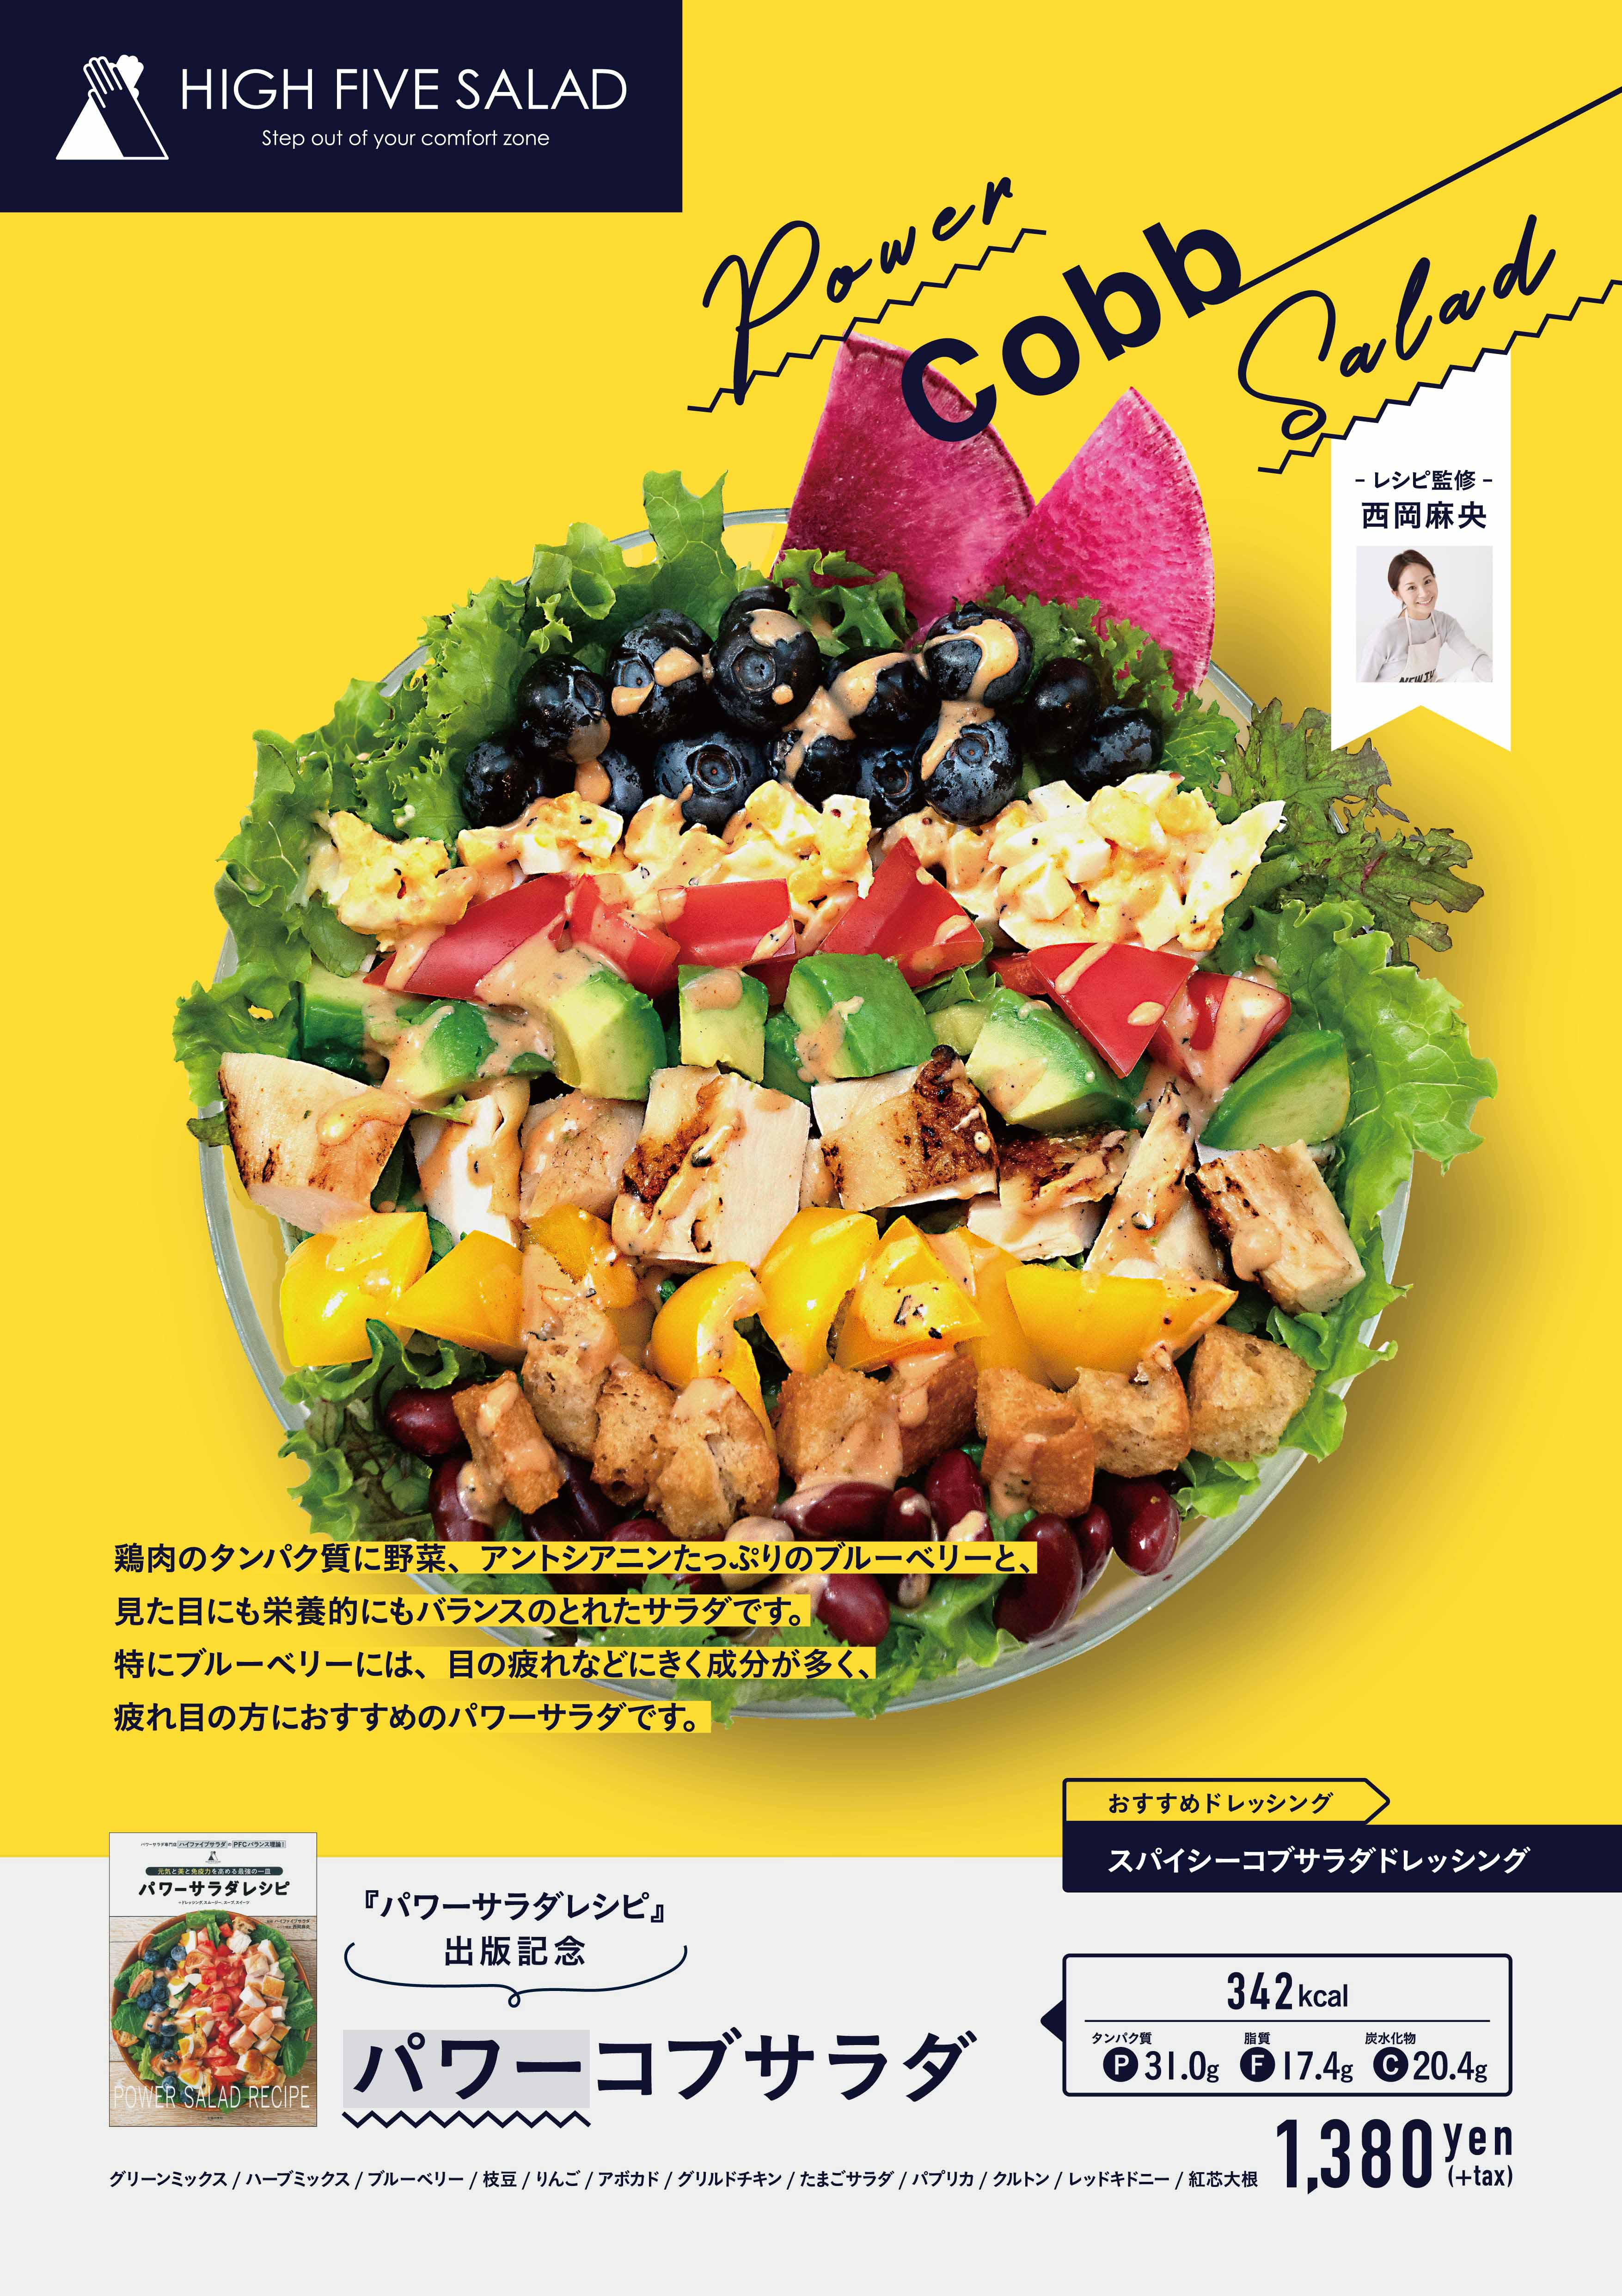 【HIGH FIVE SALAD】ポスター(2020)